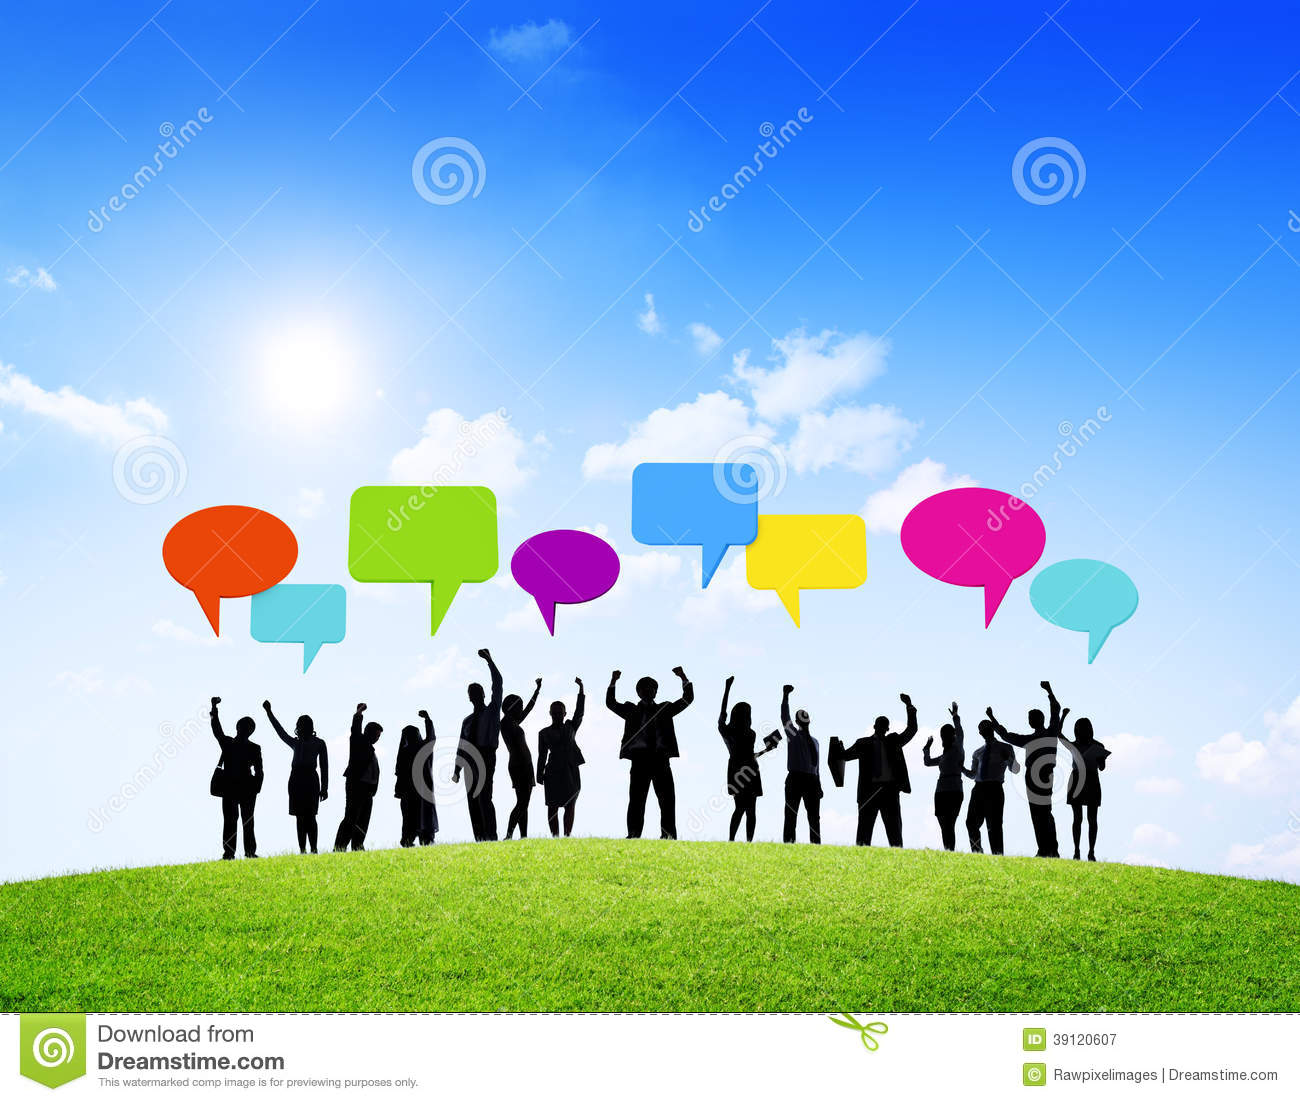 Group of Business With Speech Bubbles